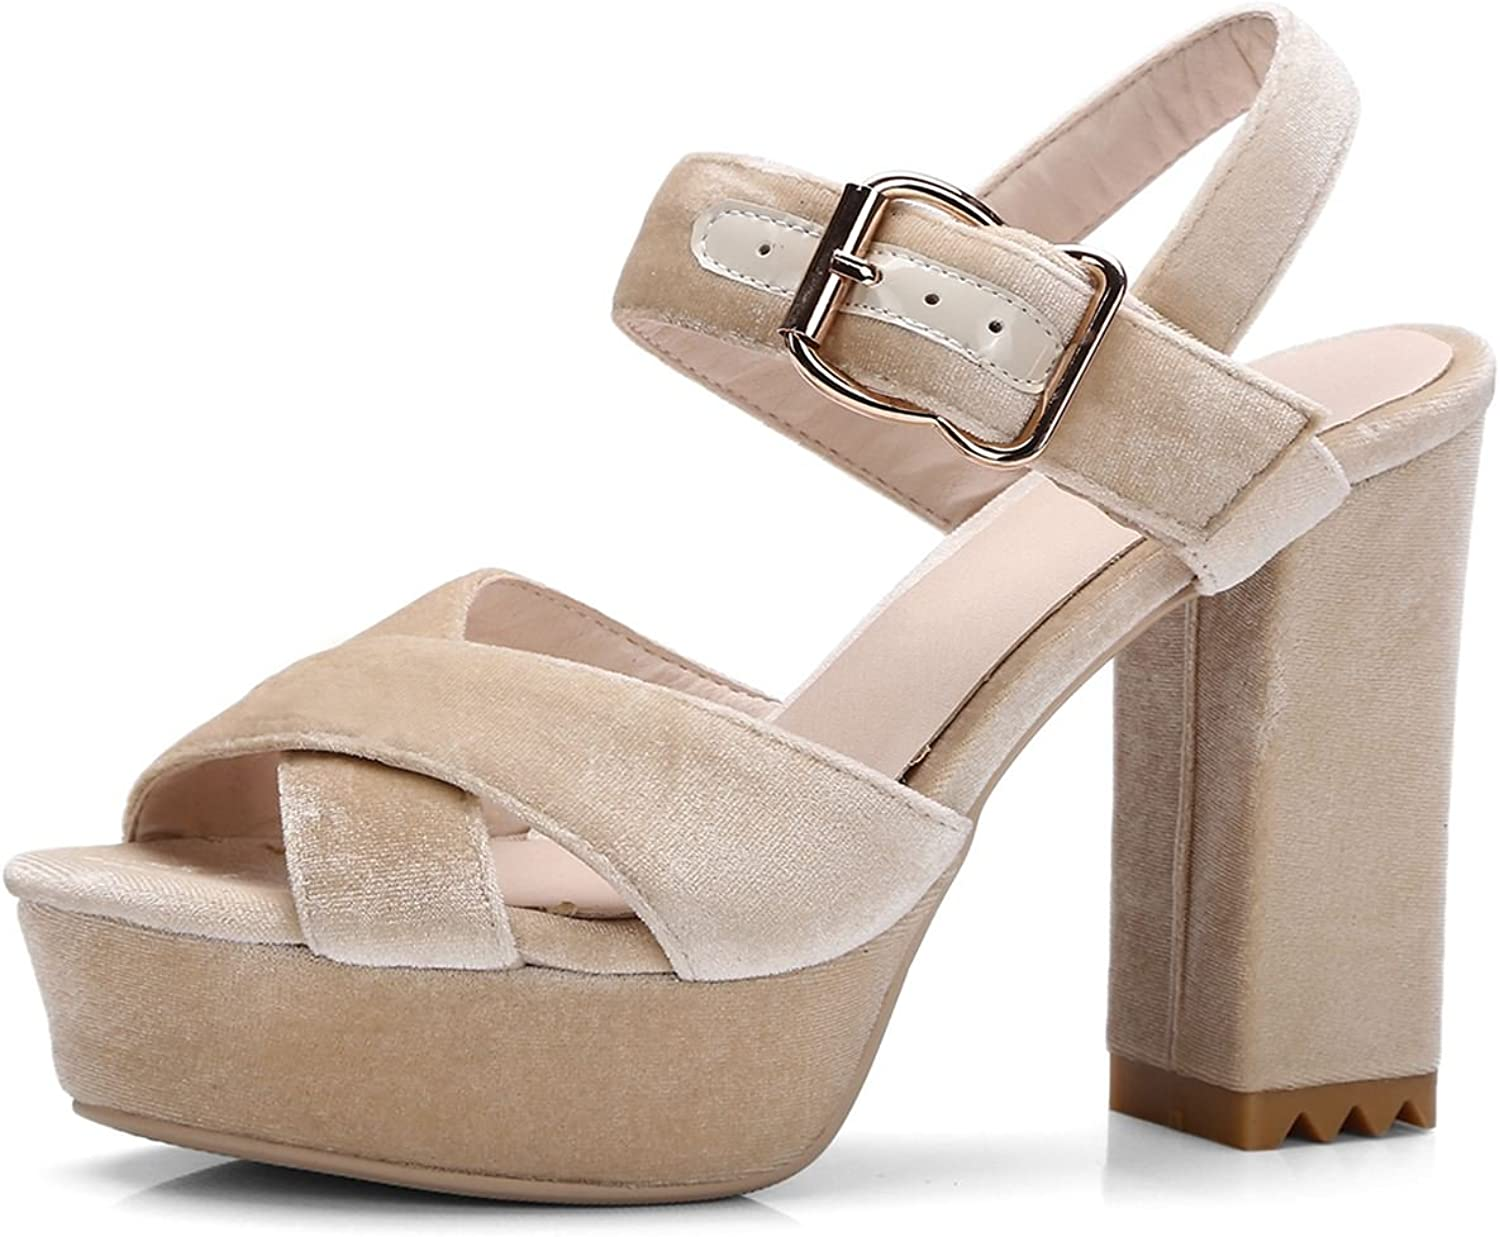 DoraTasia Women's Faux Suede High Chunky Heel Ankle Strap Buckle Sandals Size US